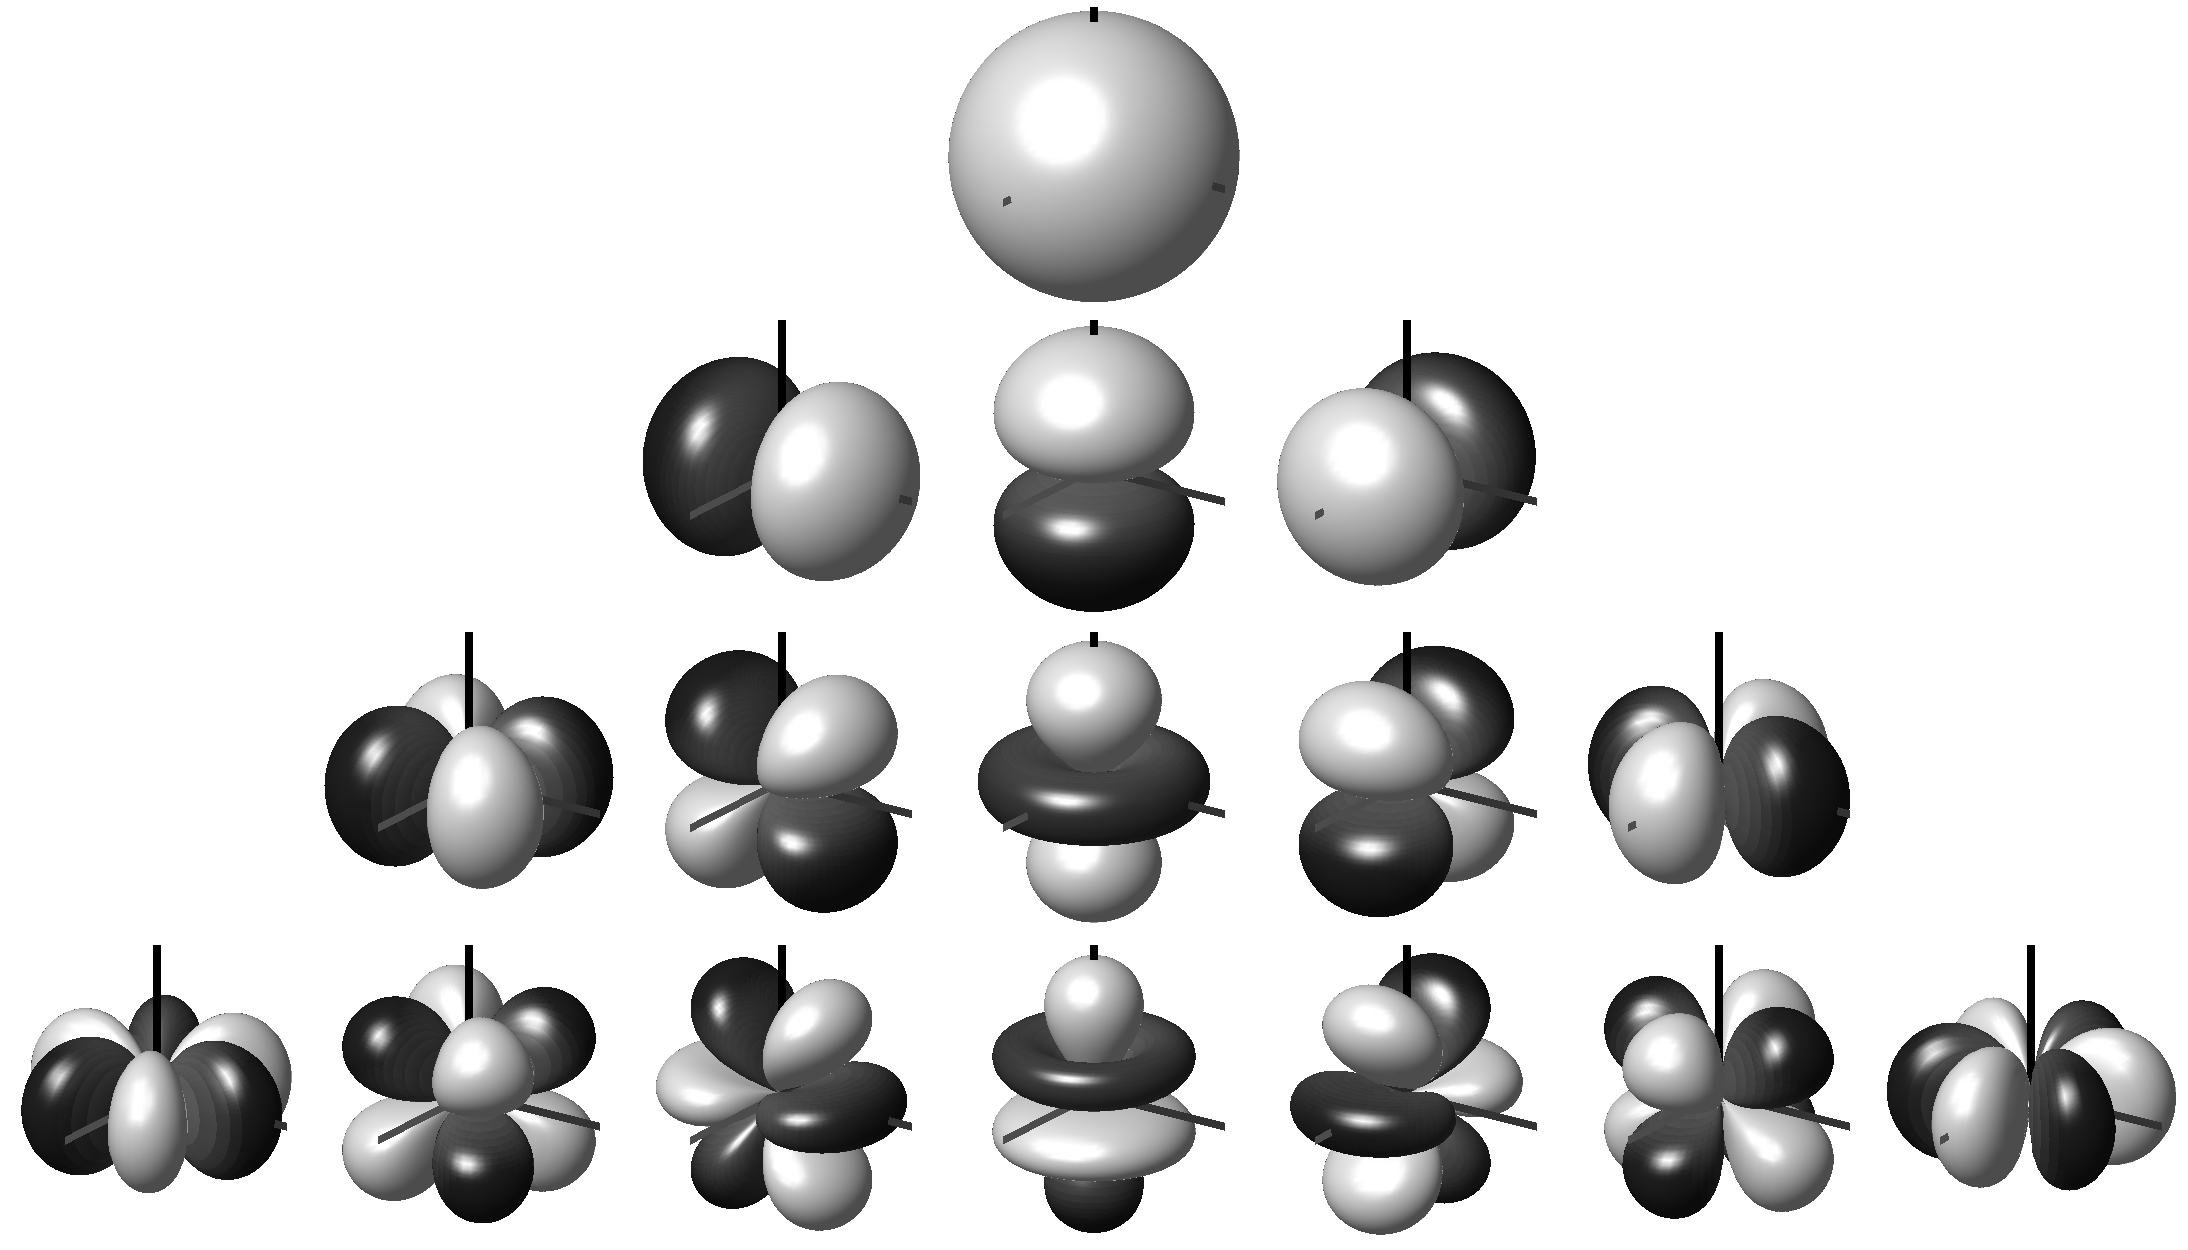 https://upload.wikimedia.org/wikipedia/commons/c/c1/Spherical_Harmonics_deg3.png